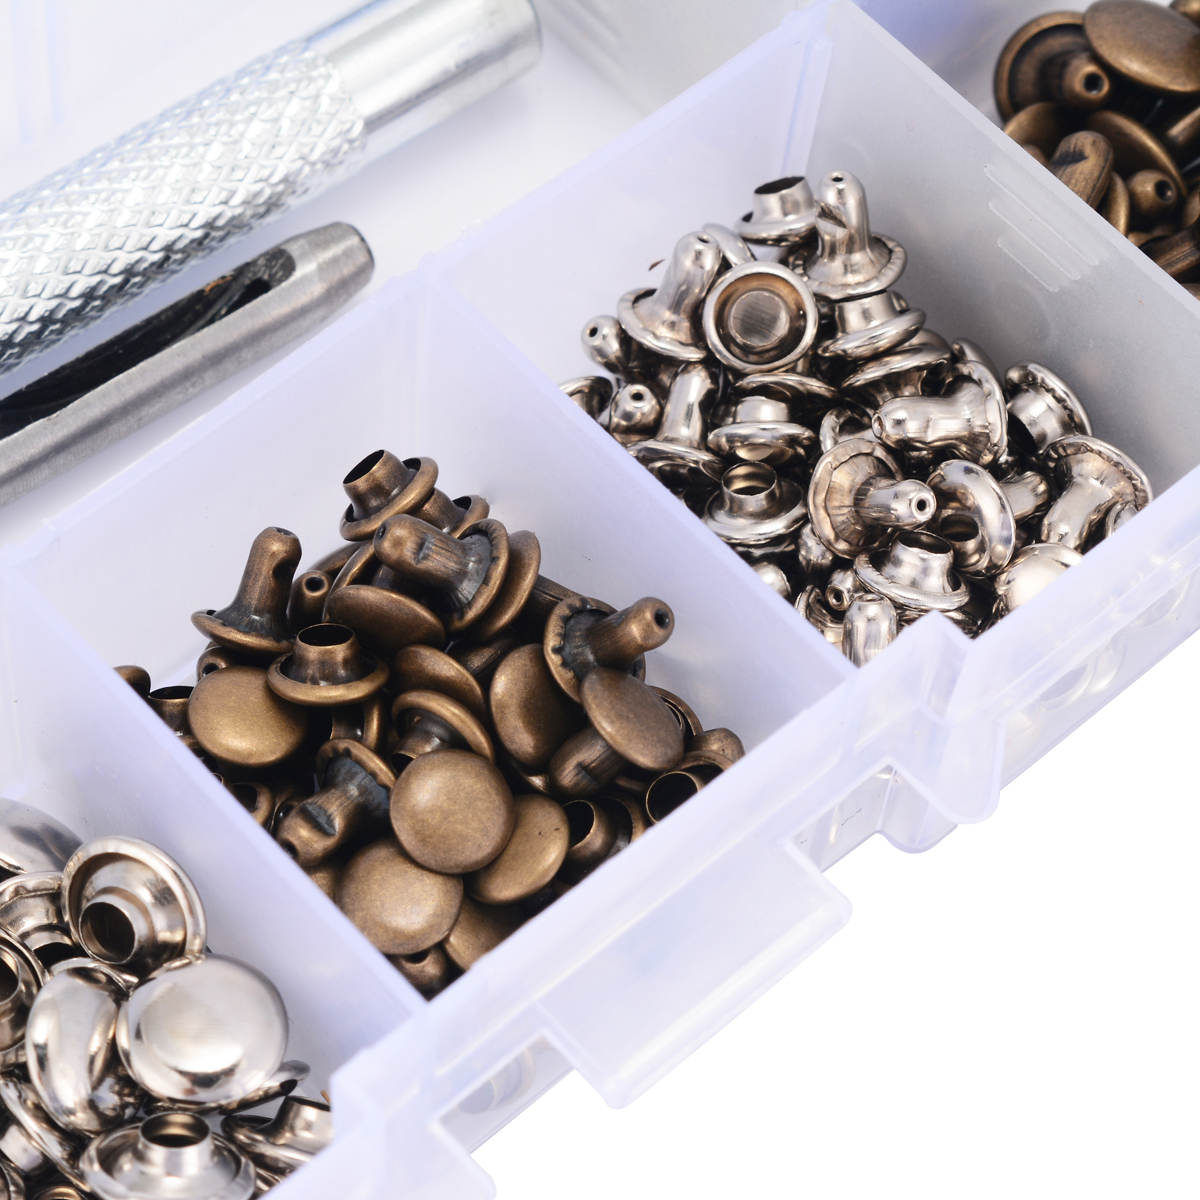 1 Set Double Sided Rivets Buckle + Fixing Tool Kit Leather Repairing Rivets Tubular Metal Single for DIY Crafts Clothes Jackets